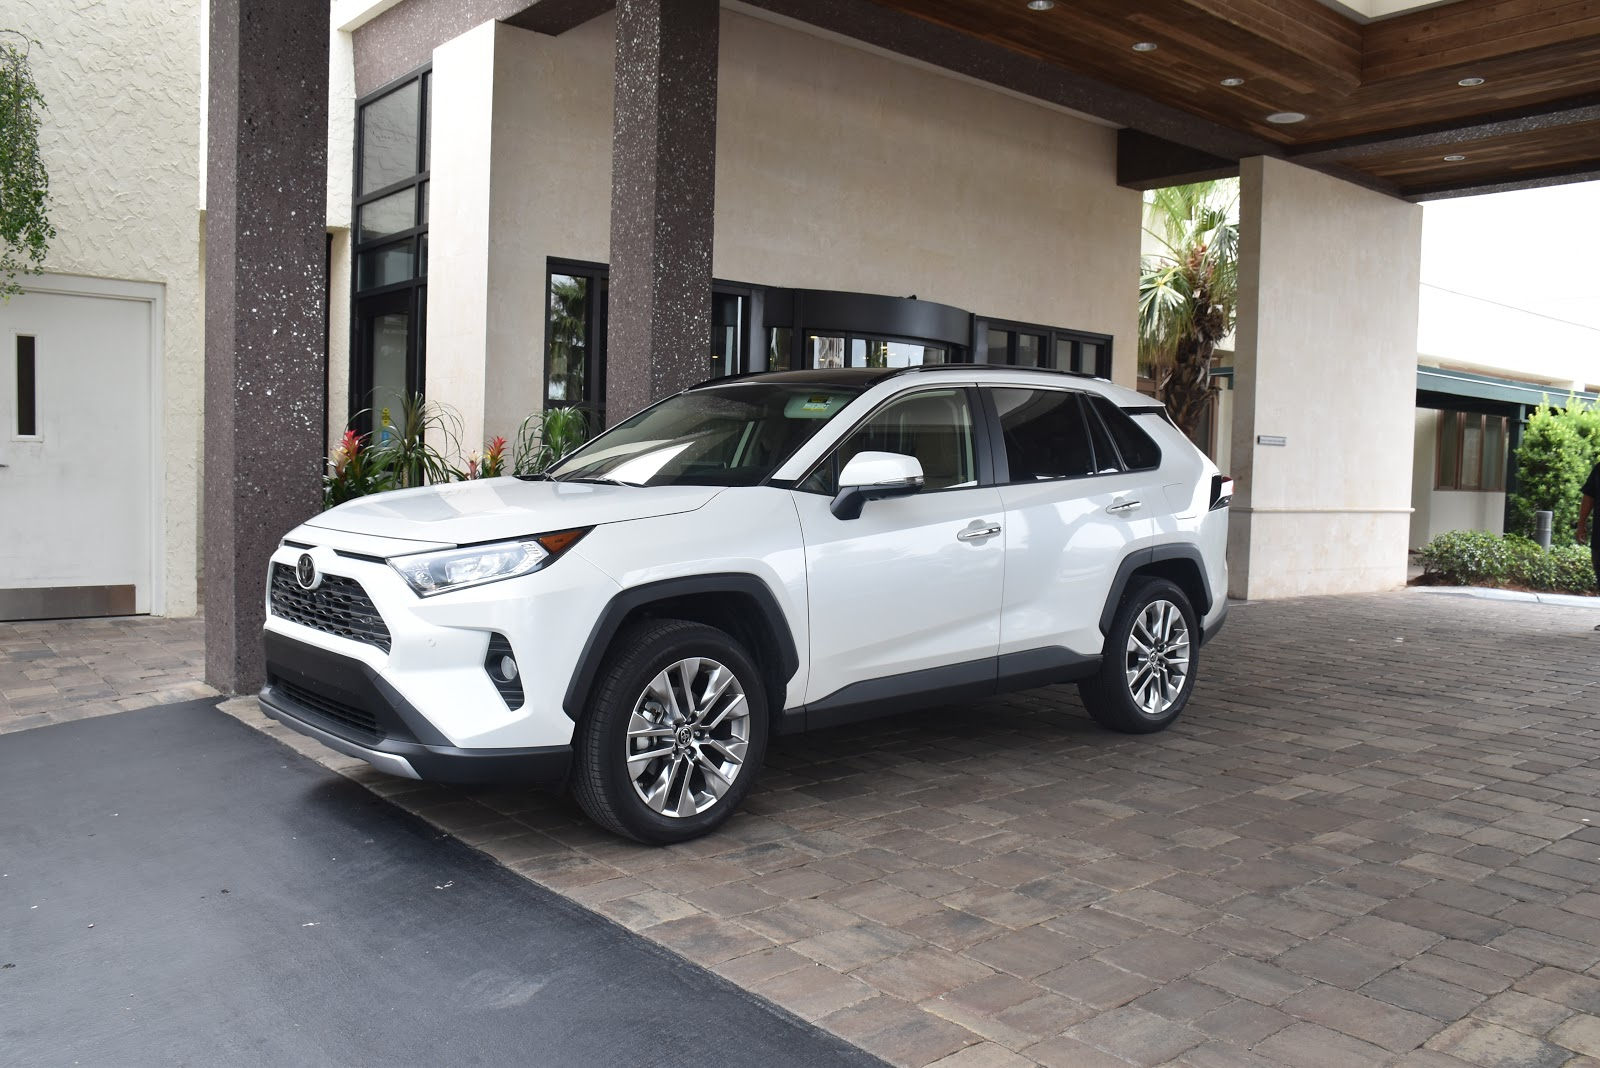 2019 Toyota RAV4 in Destin Florida